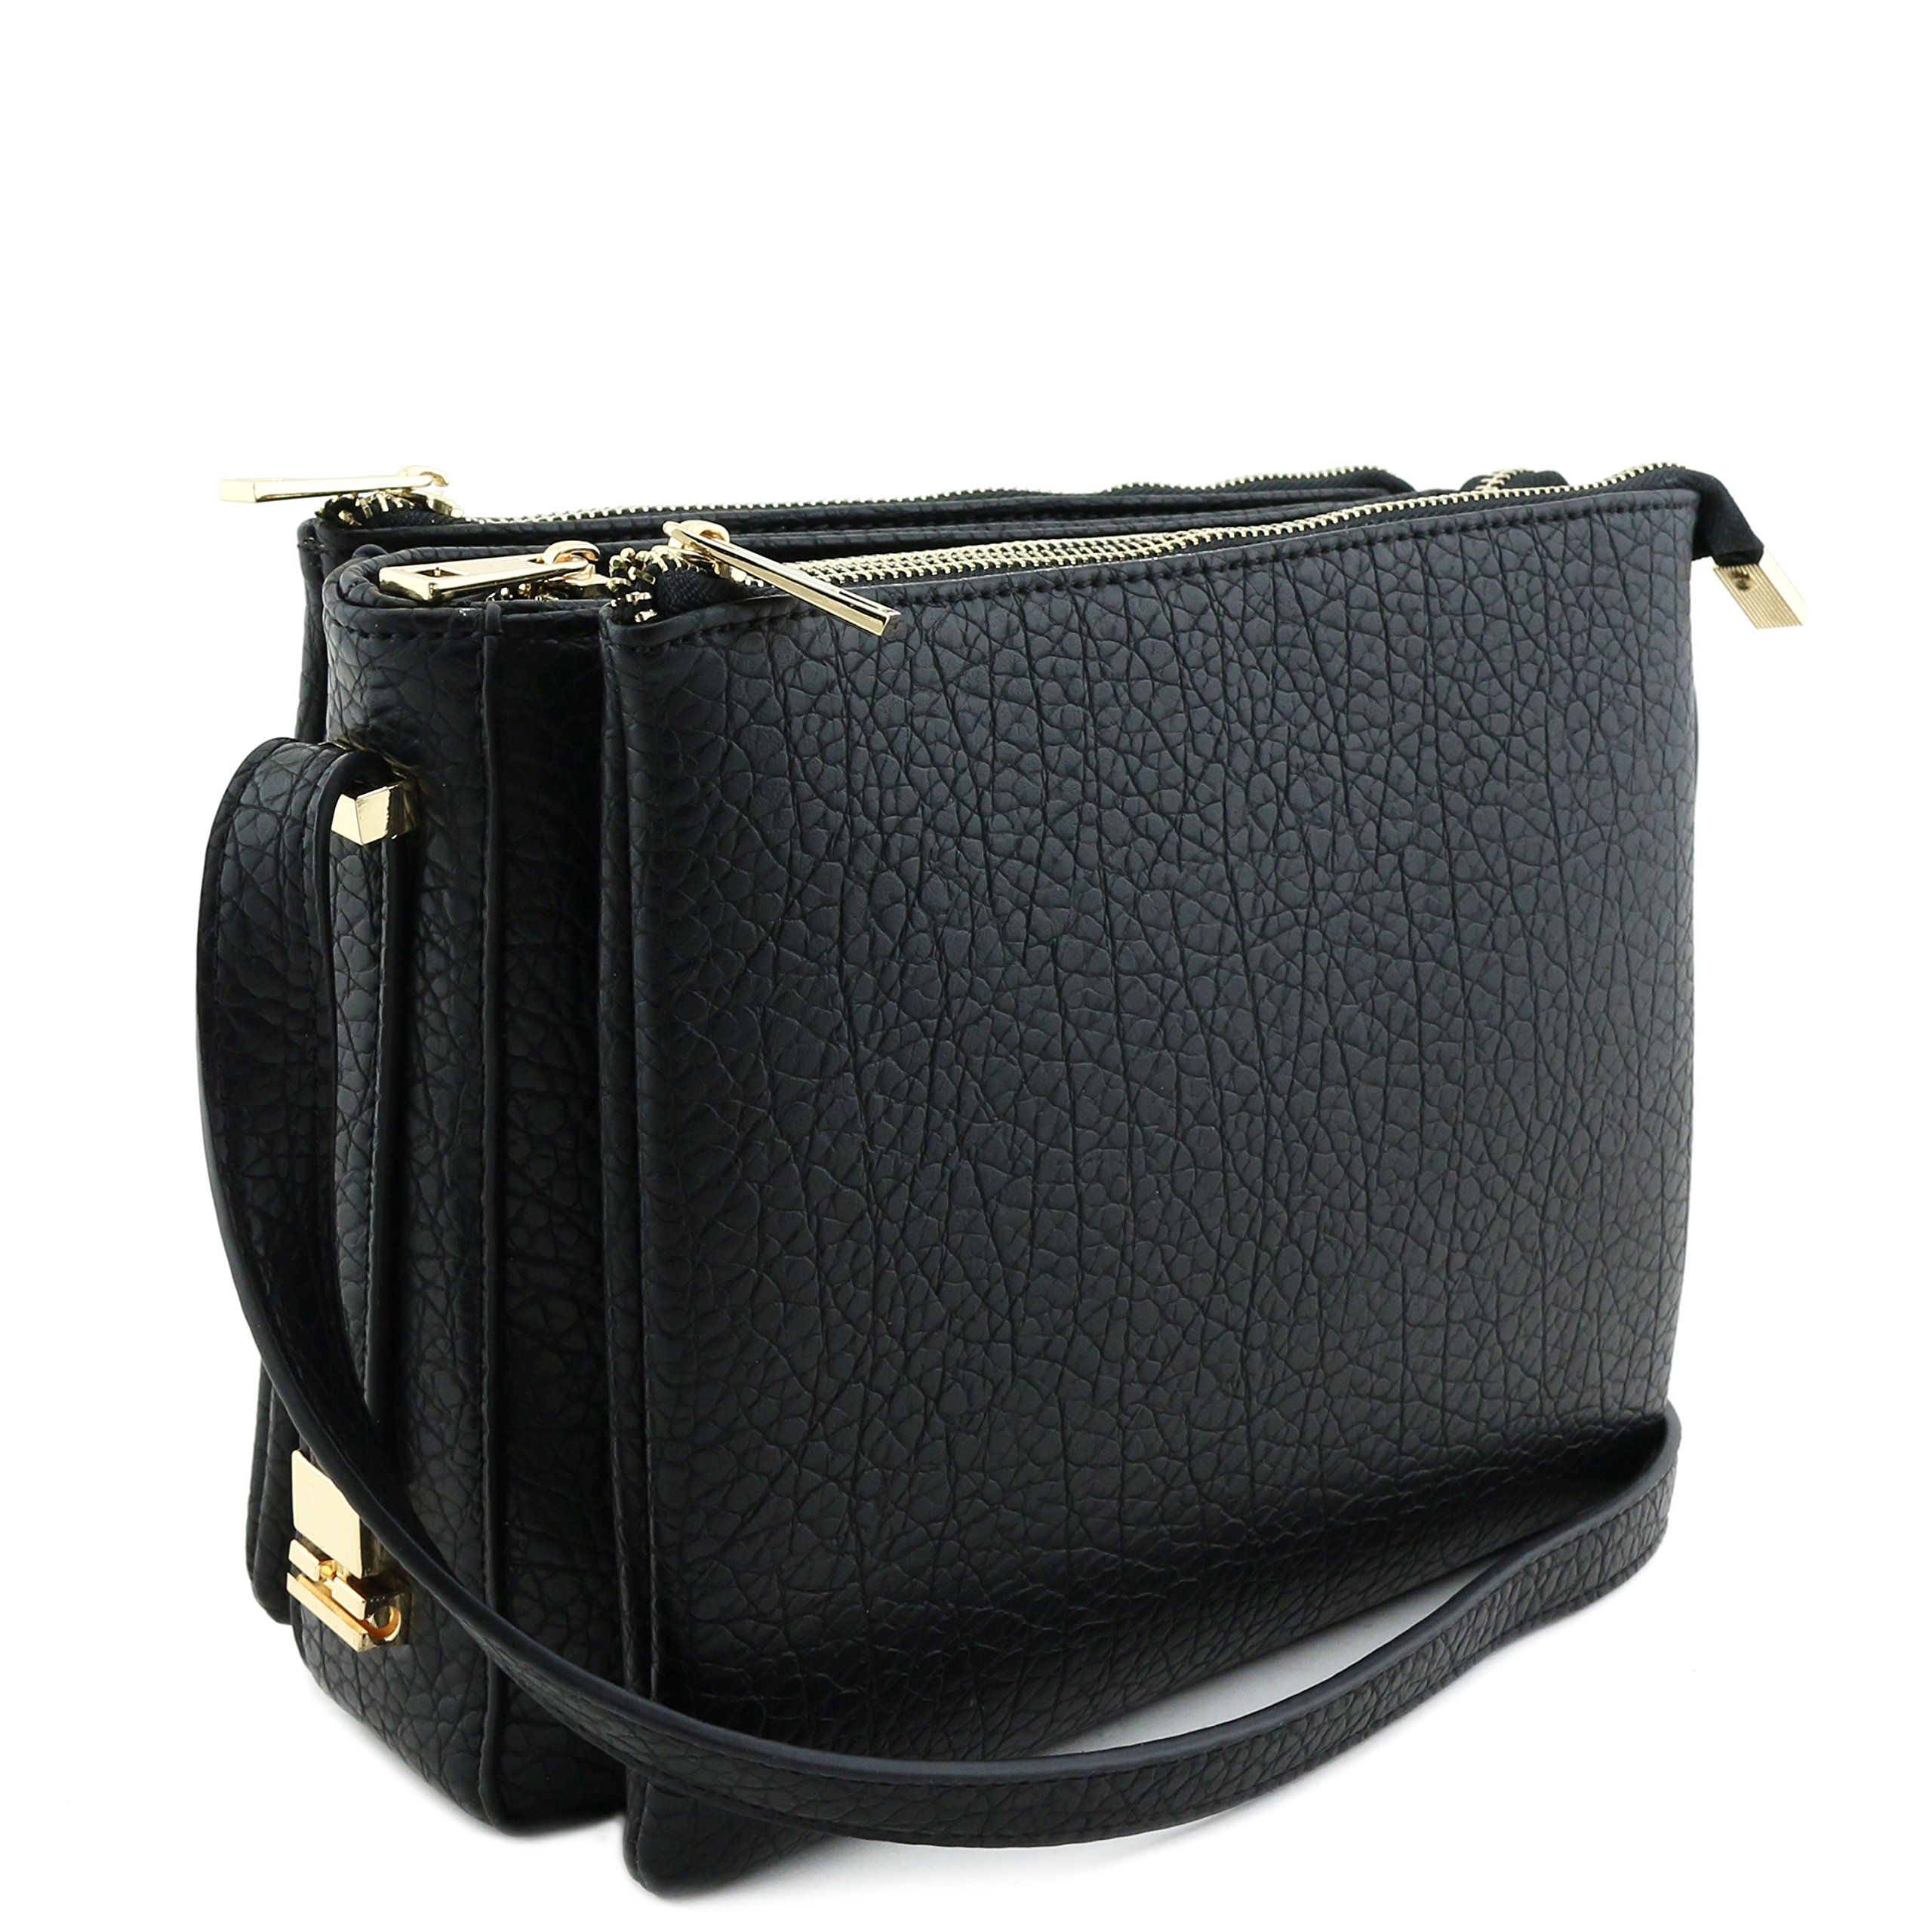 Three Compartment Zipper Top Crossbody Bag Black